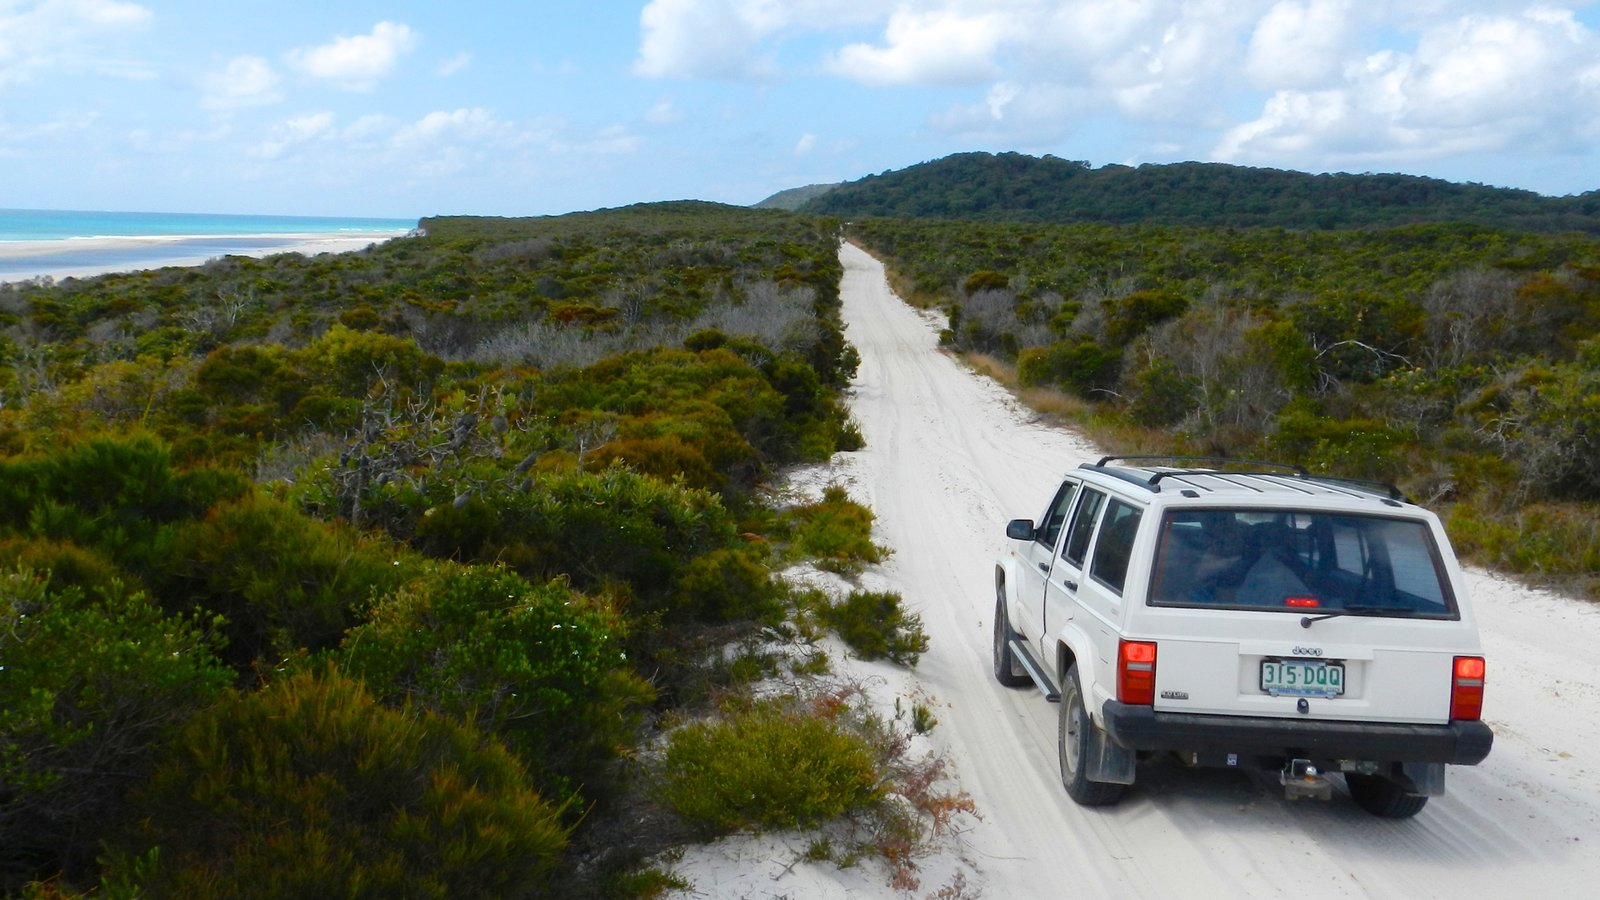 Moreton Island National Park which includes a beach, off road driving and general coastal views